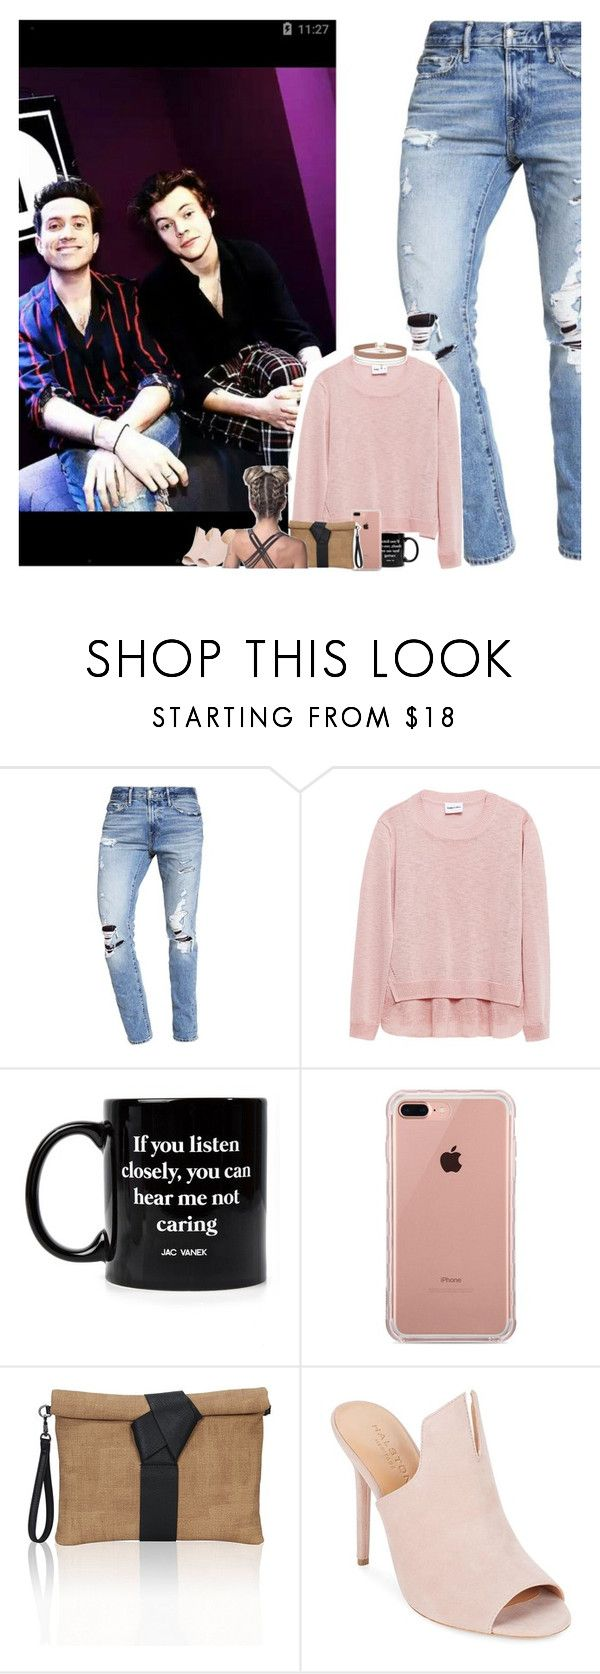 """""""Interview w/Harry; about 1D,SOTT,Dunkirk"""" by nblankenship ❤ liked on Polyvore featuring Abercrombie & Fitch, Jac Vanek, Belkin, Halston Heritage and Miss Selfridge"""